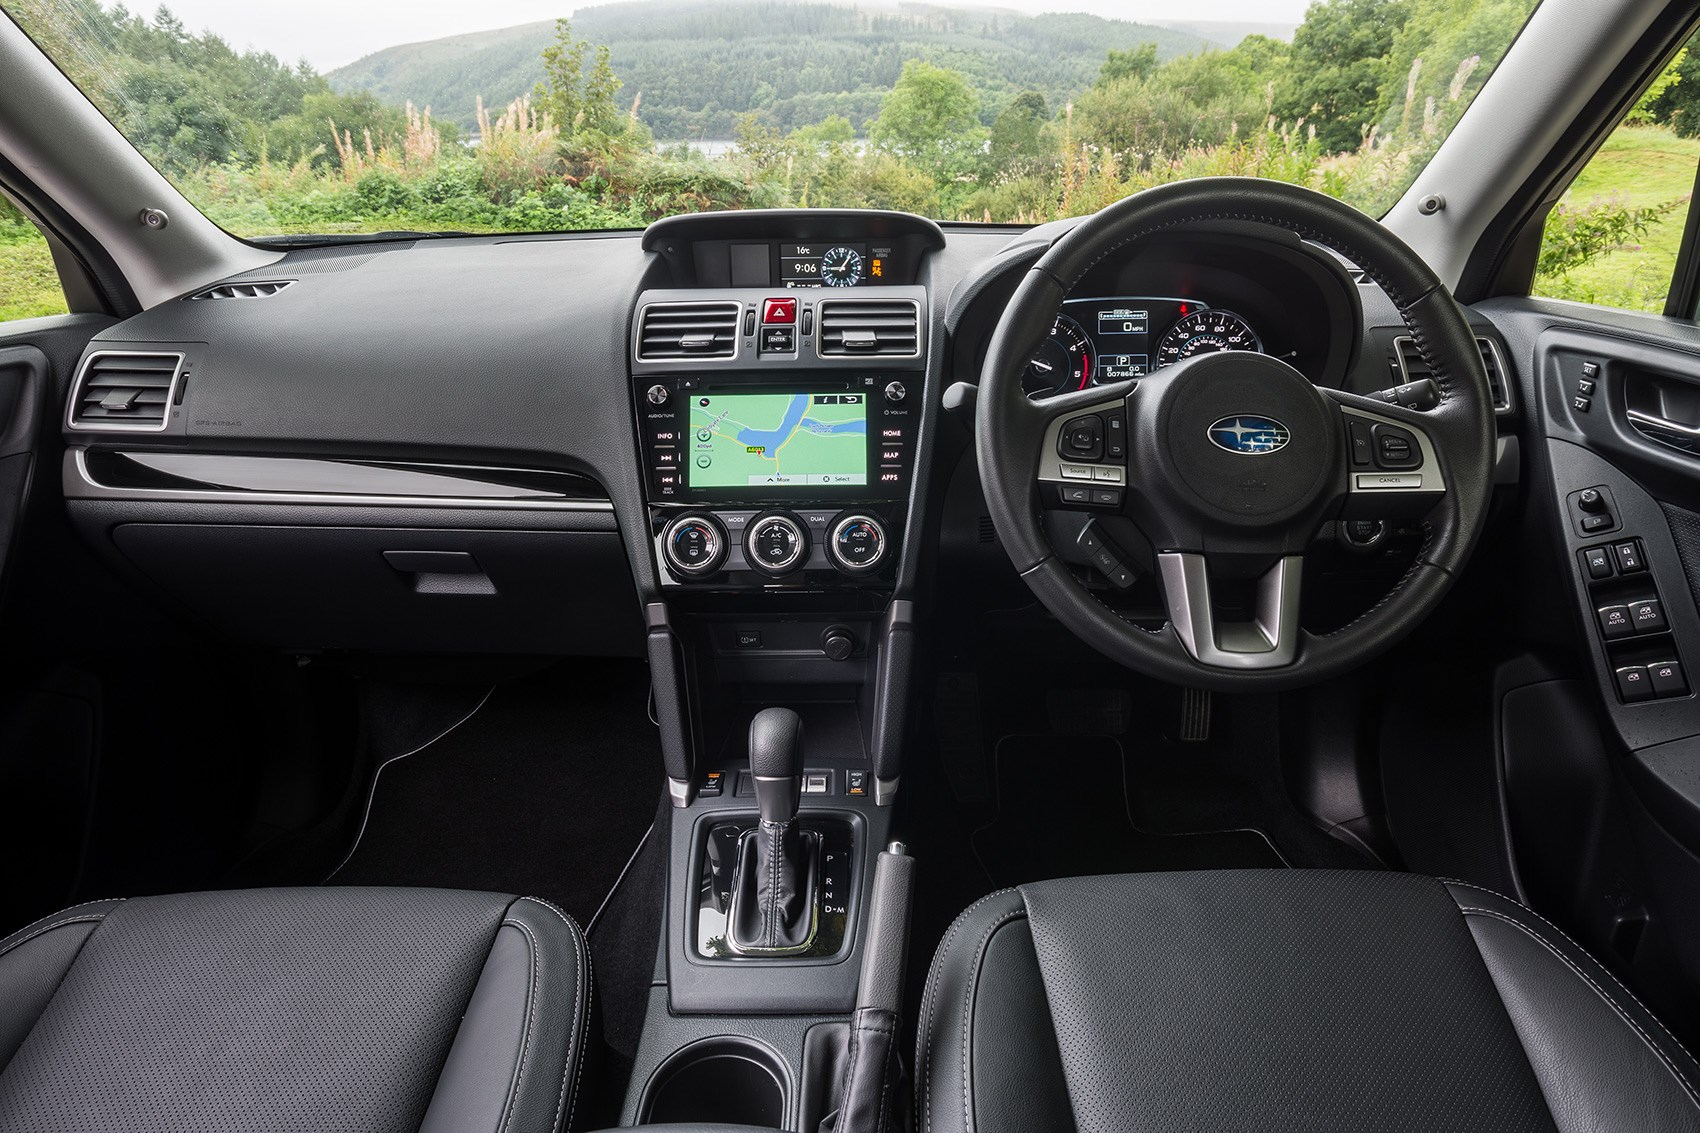 Inside the 2018 Subaru Forester interior: tough and basic but all works